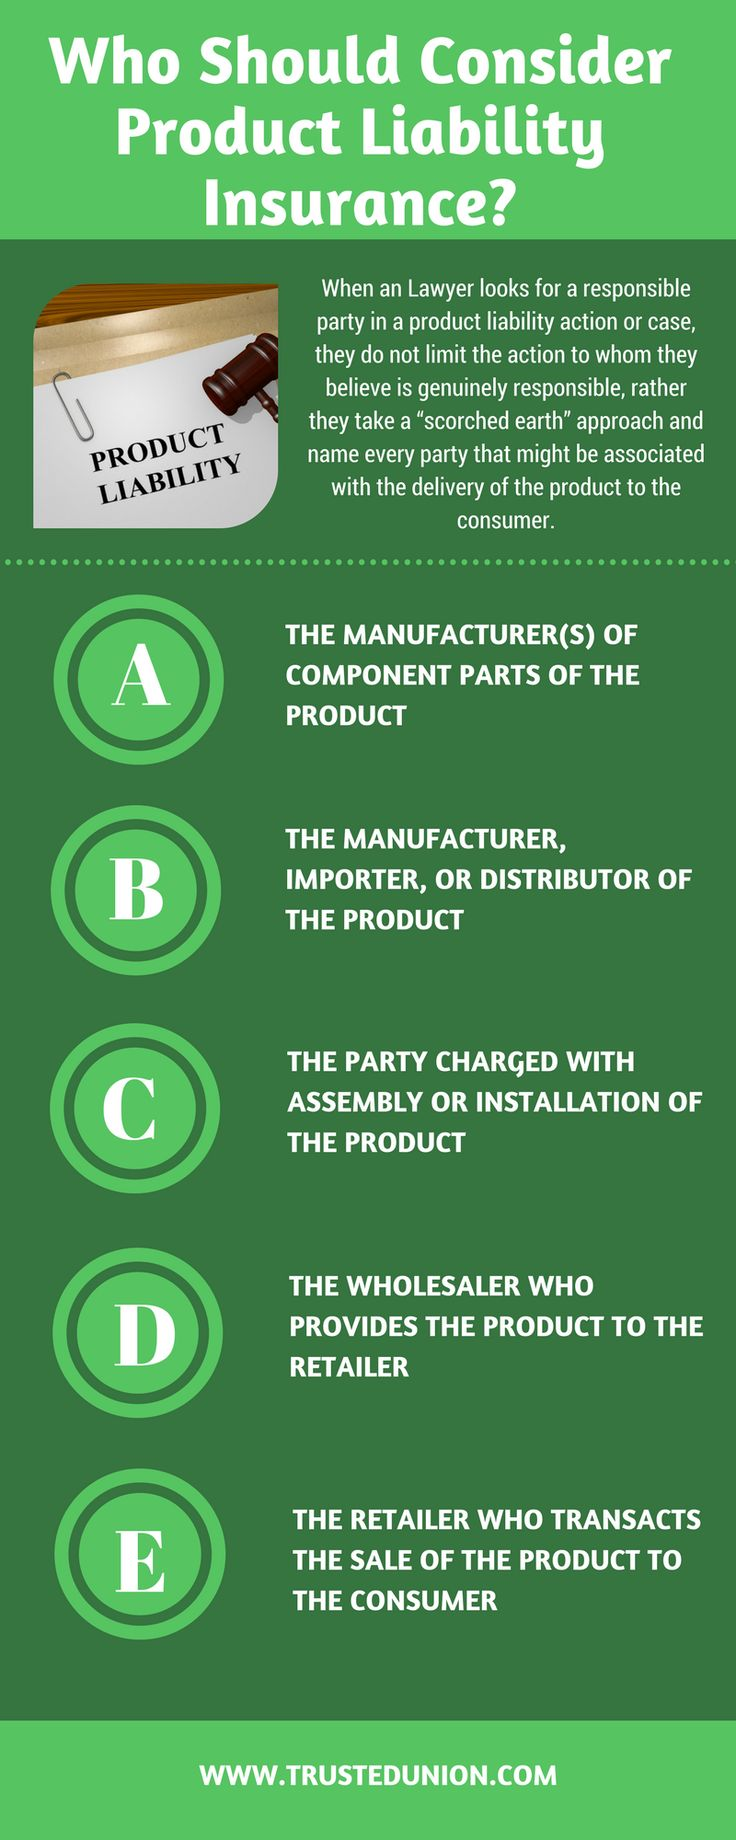 Product Liability cover is designed to protect you and your business if found liable for bodily injury or property damage losses that arise out of a defect in a product you sold, manufactured, or distributed.